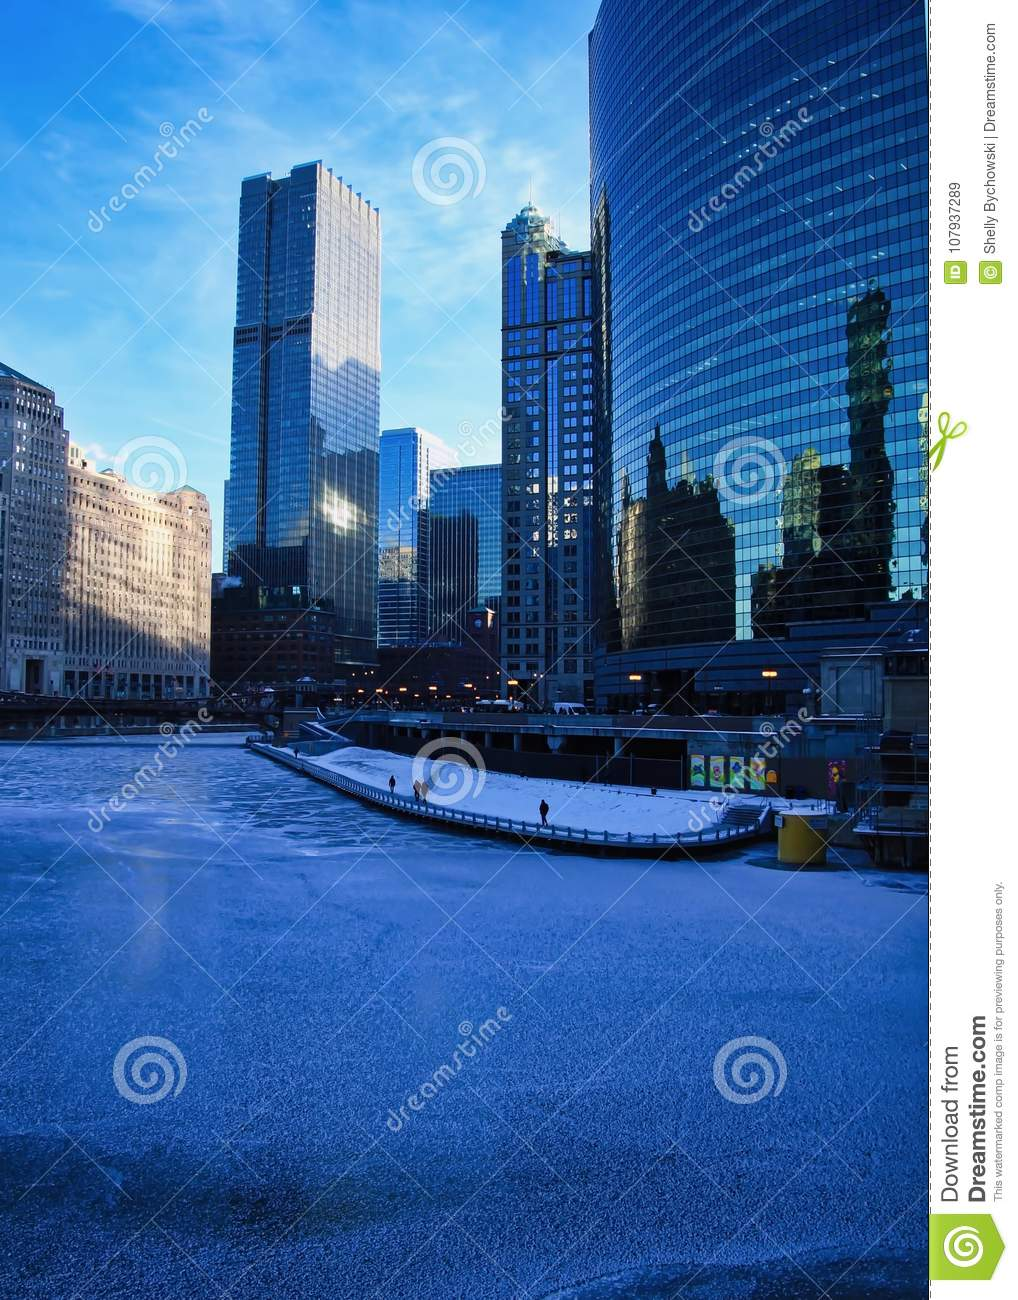 High-angle view of pedestrians on the riverwalk alongside a frozen Chicago River on a blue, frigid morning in winter.